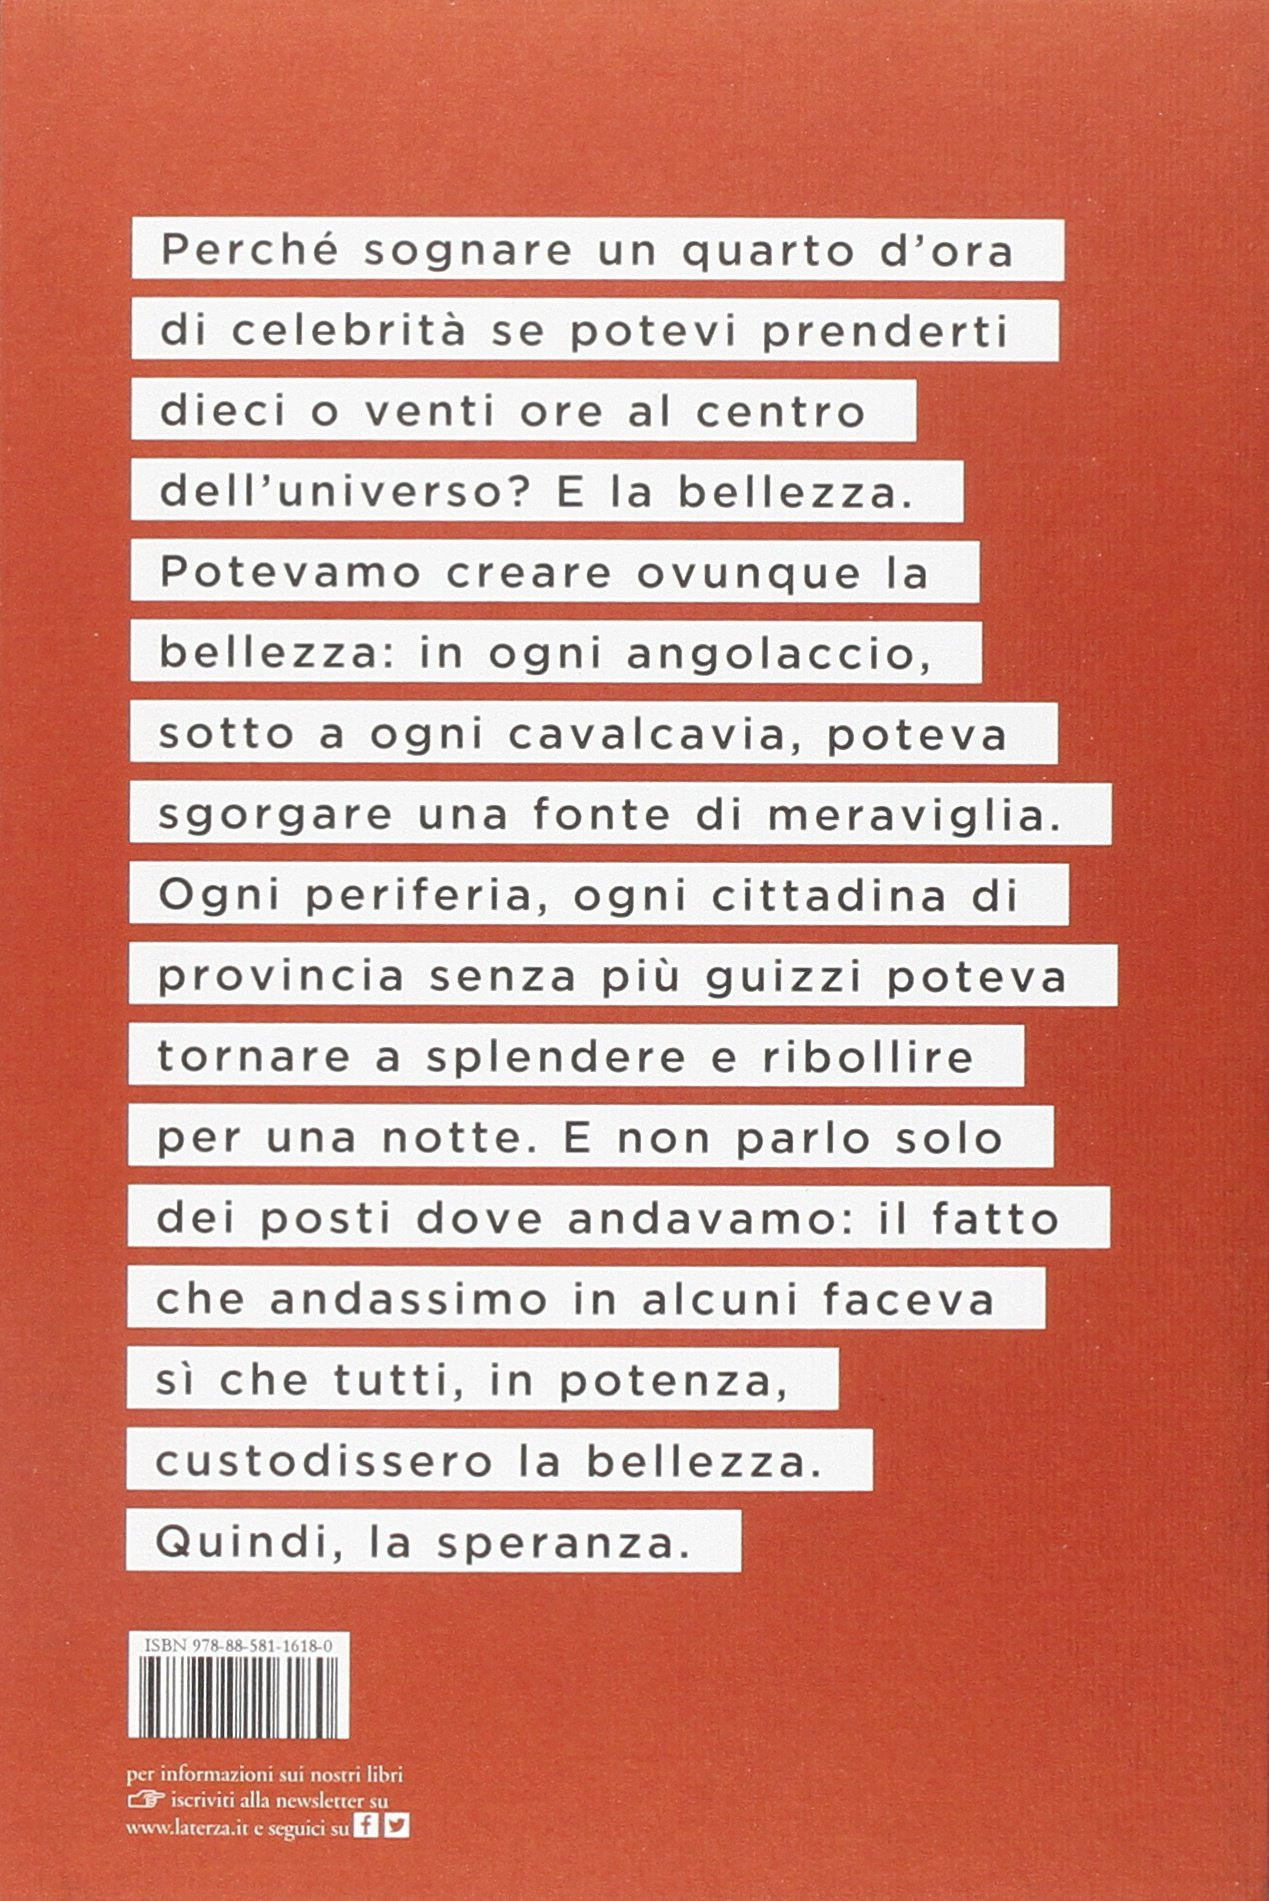 Amazon.it  Muro di casse - Vanni Santoni - Libri 730f67fb1f8